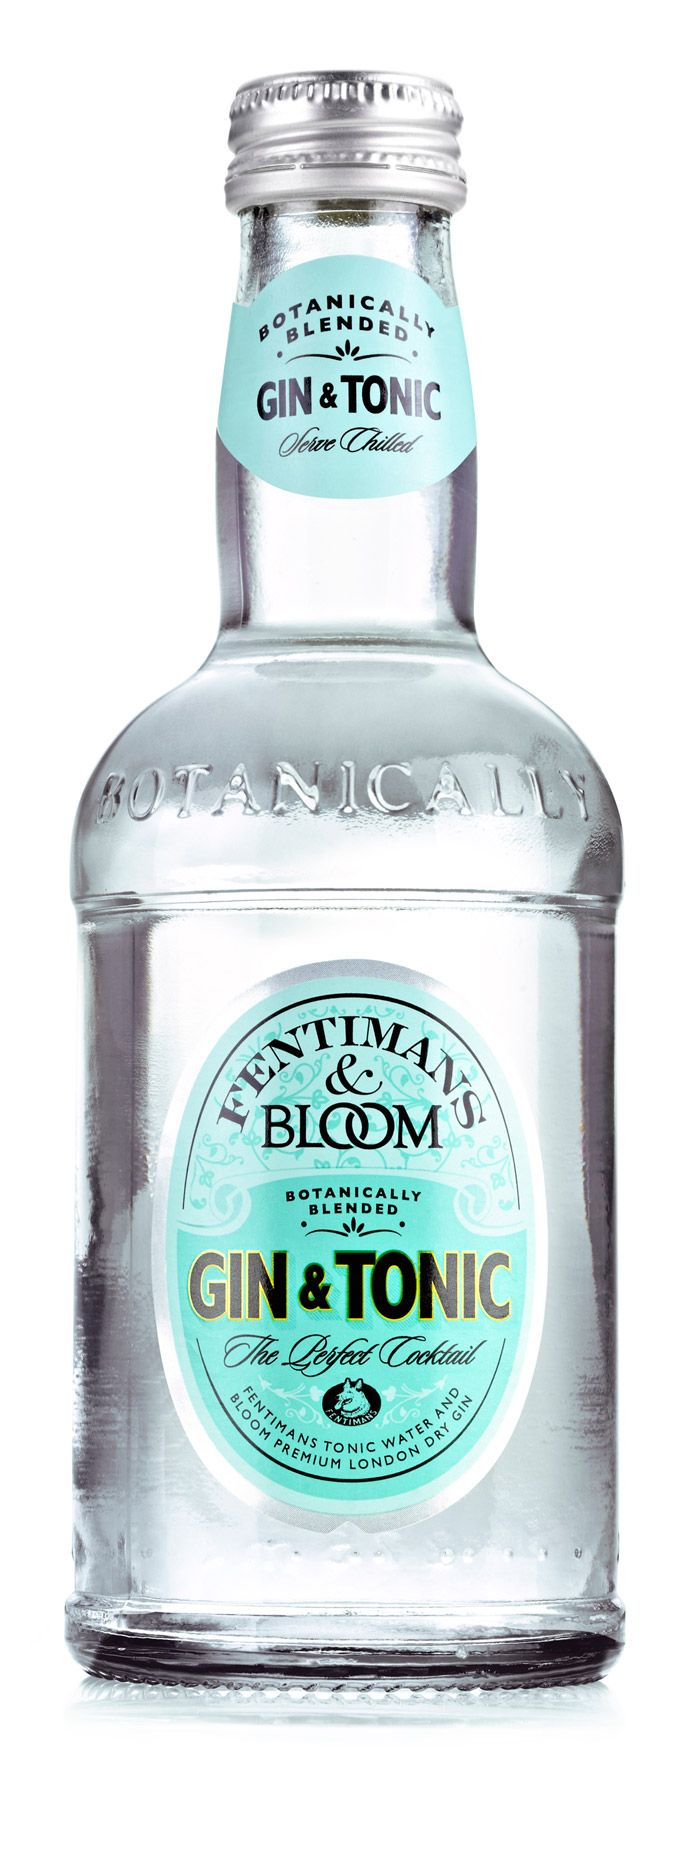 Fentiman's and Bloom Gin  Tonic